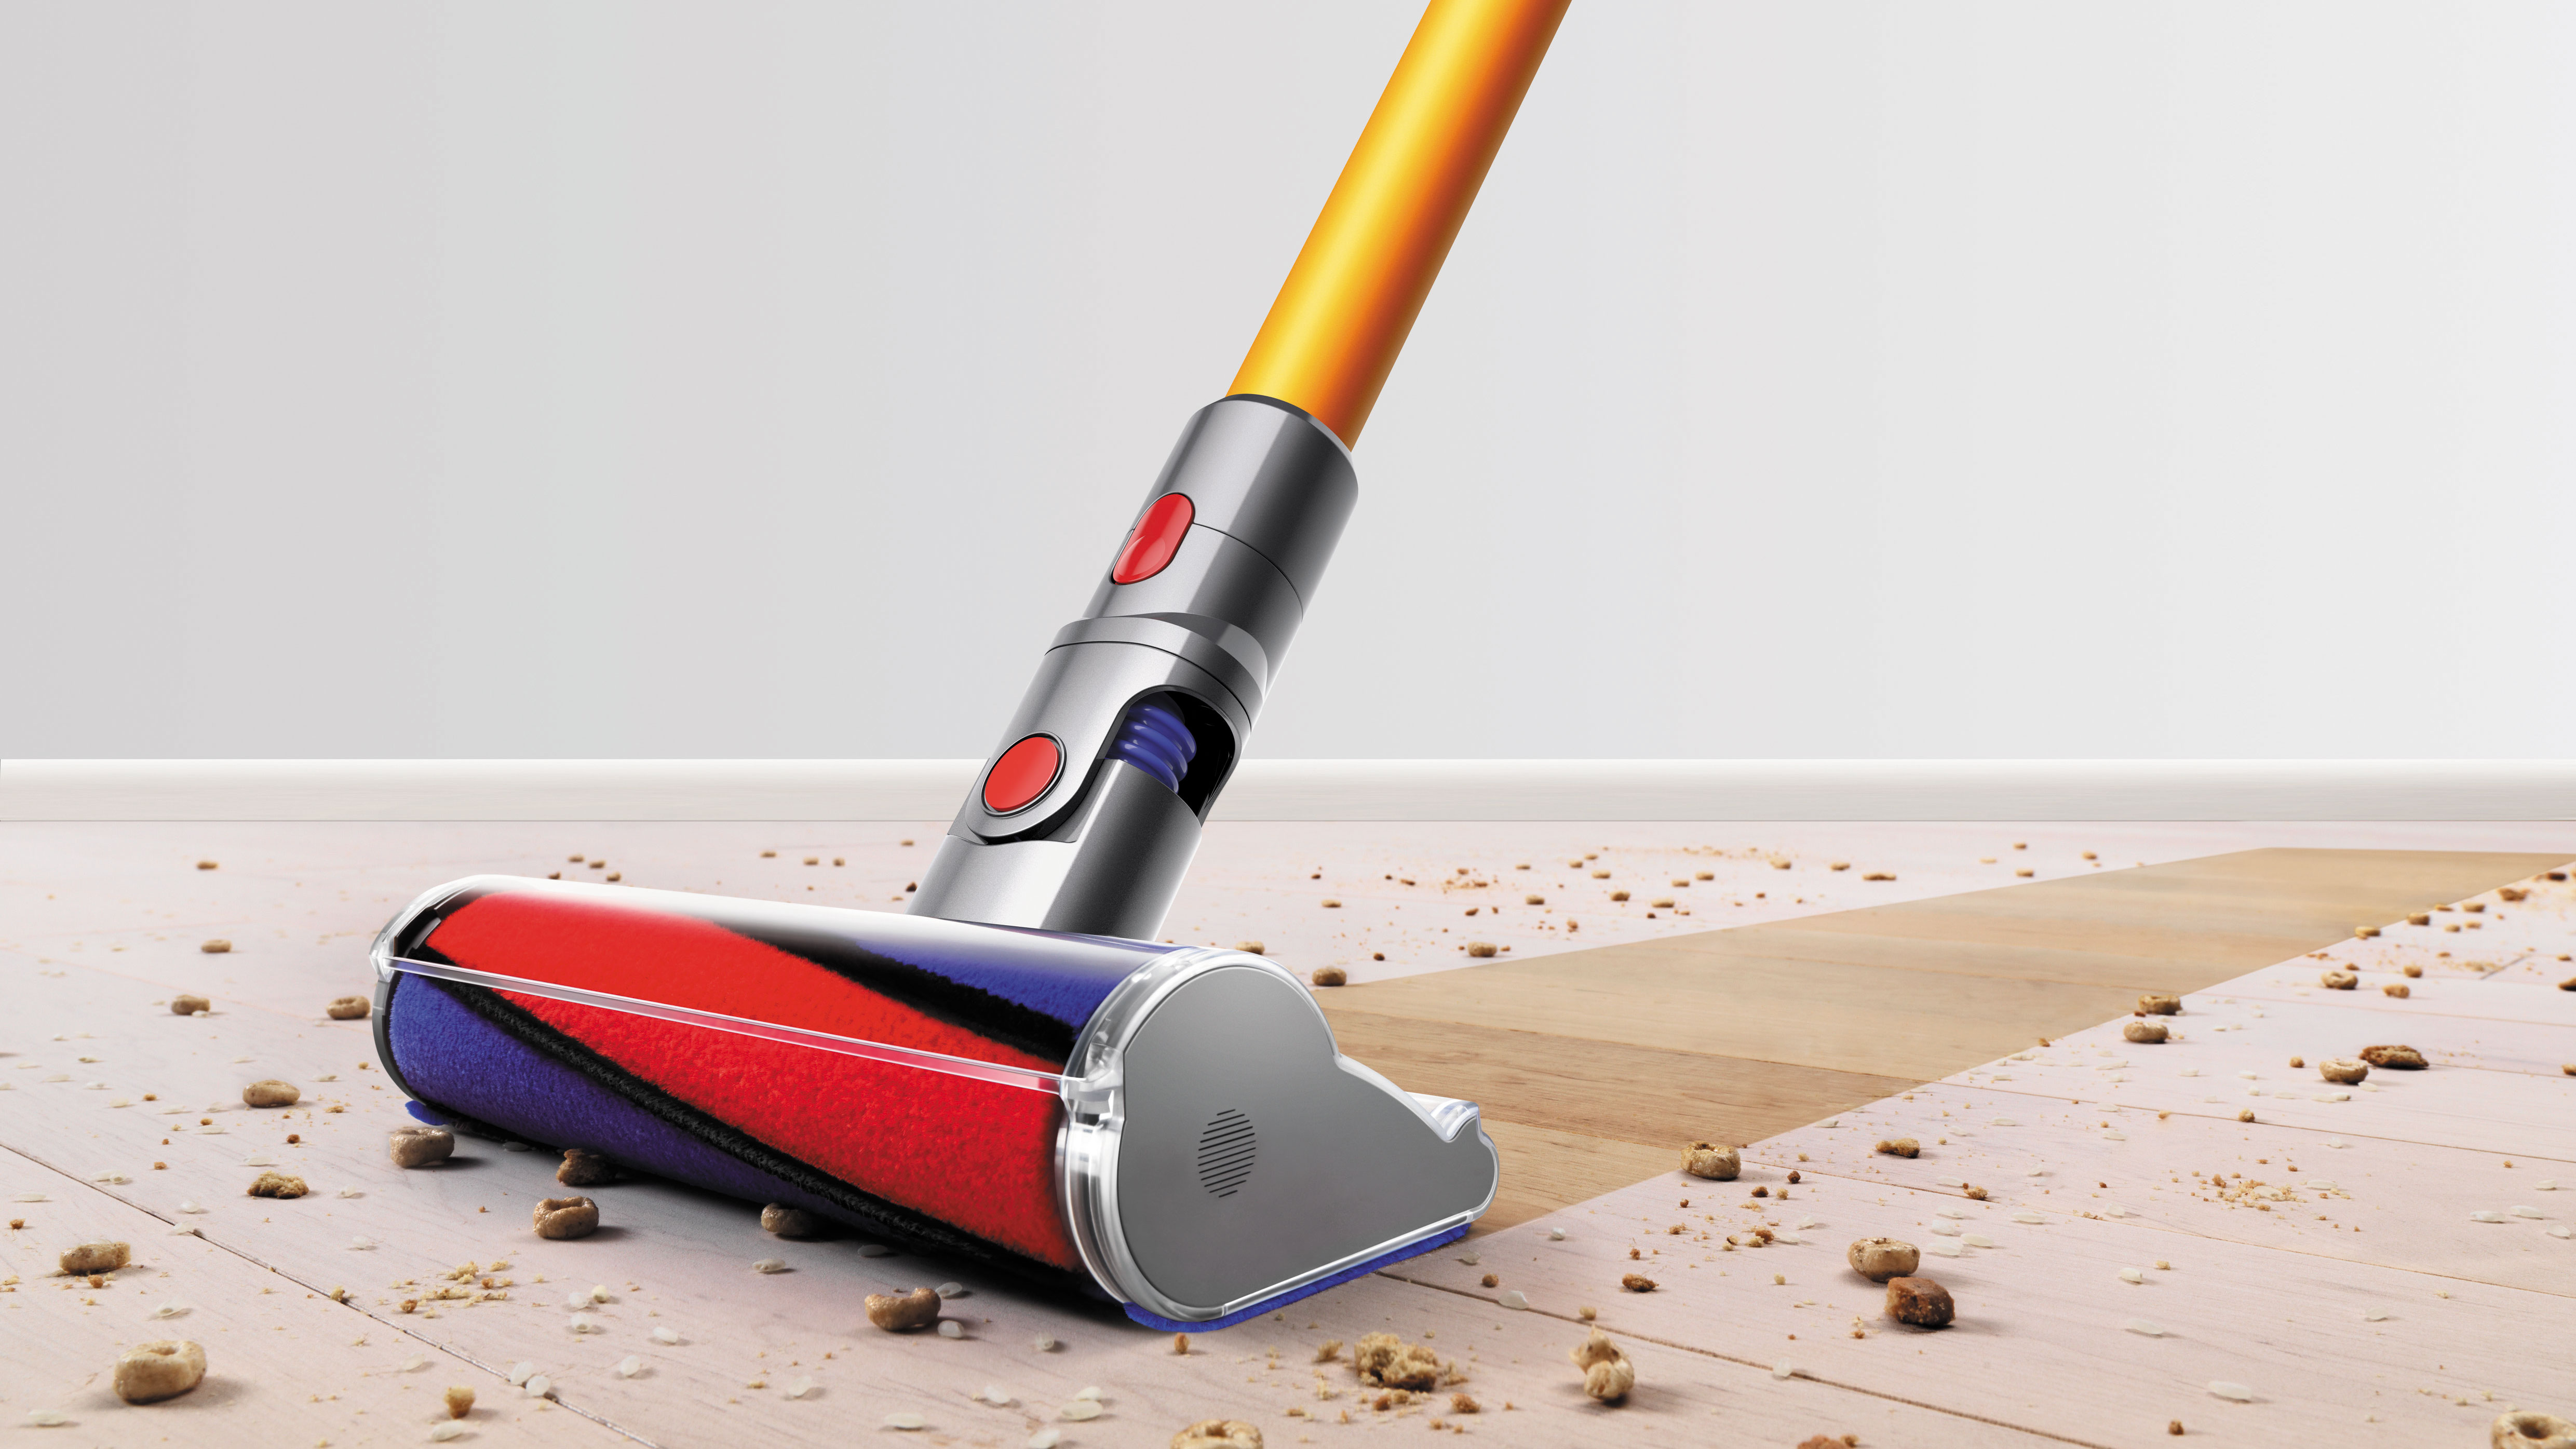 Dyson Doubles The Battery Life Of Its Cordless Vacuums